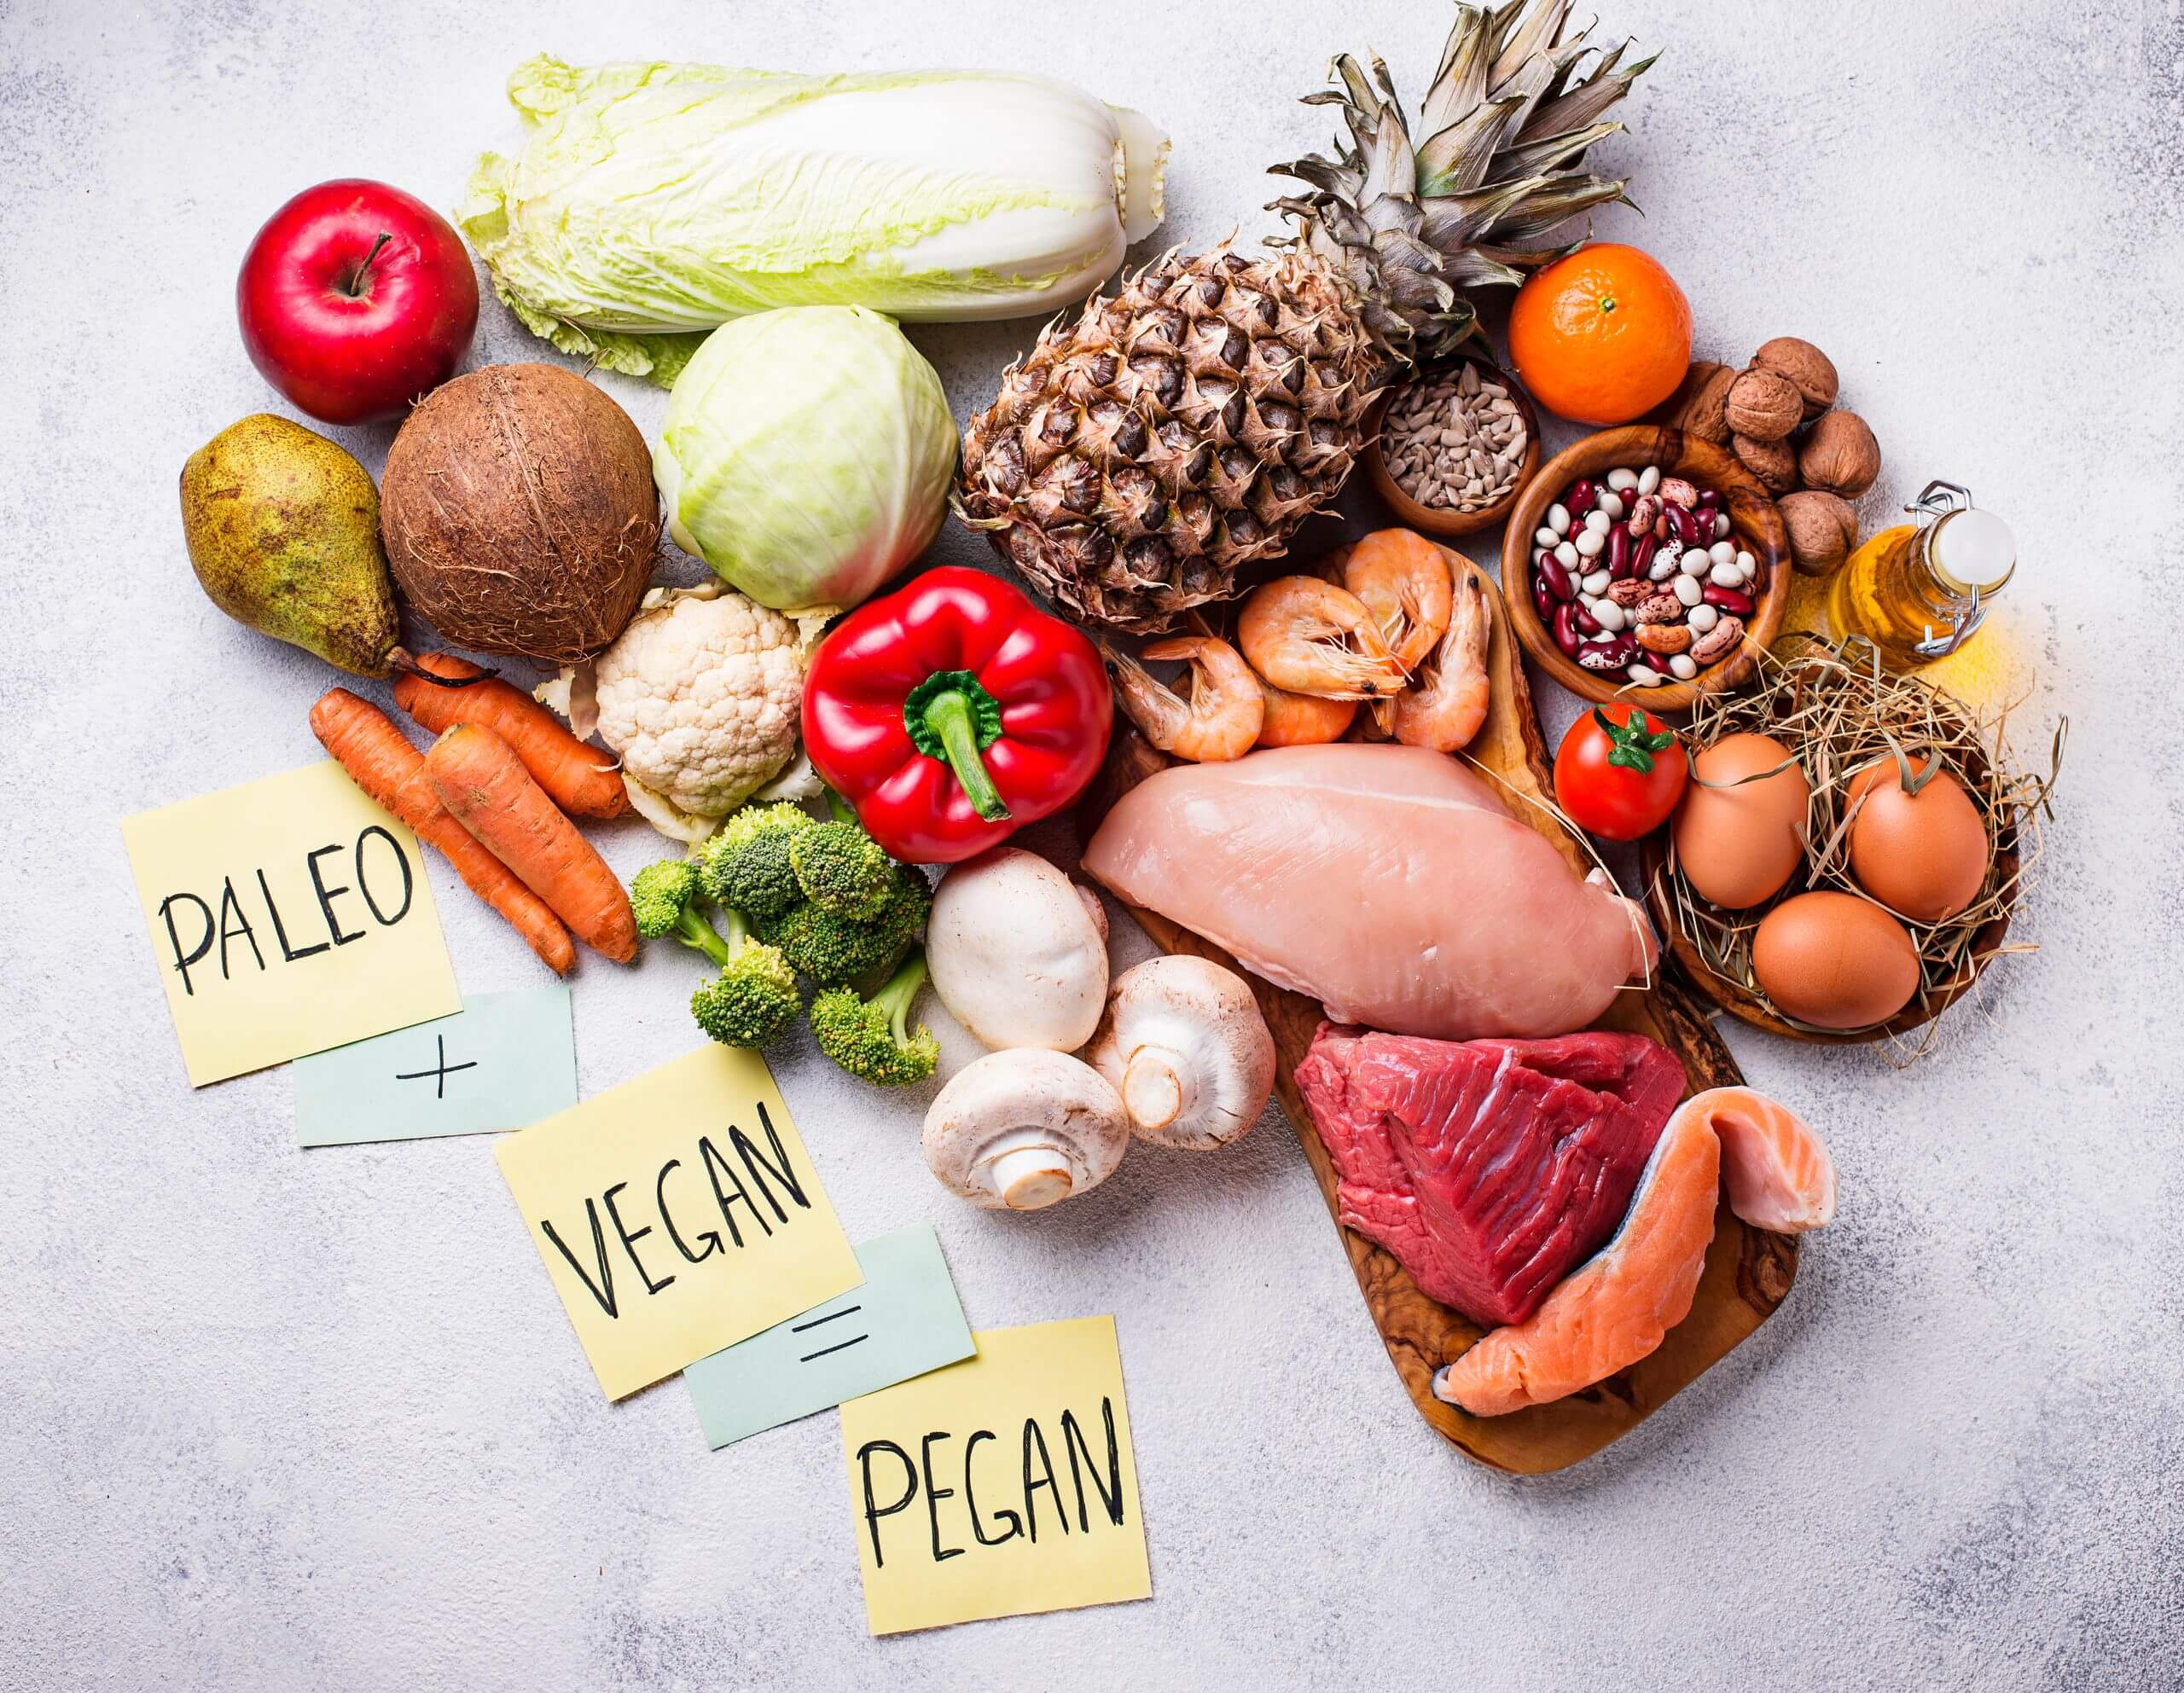 Trendy pegan diet. Paleo and vegan healthy products